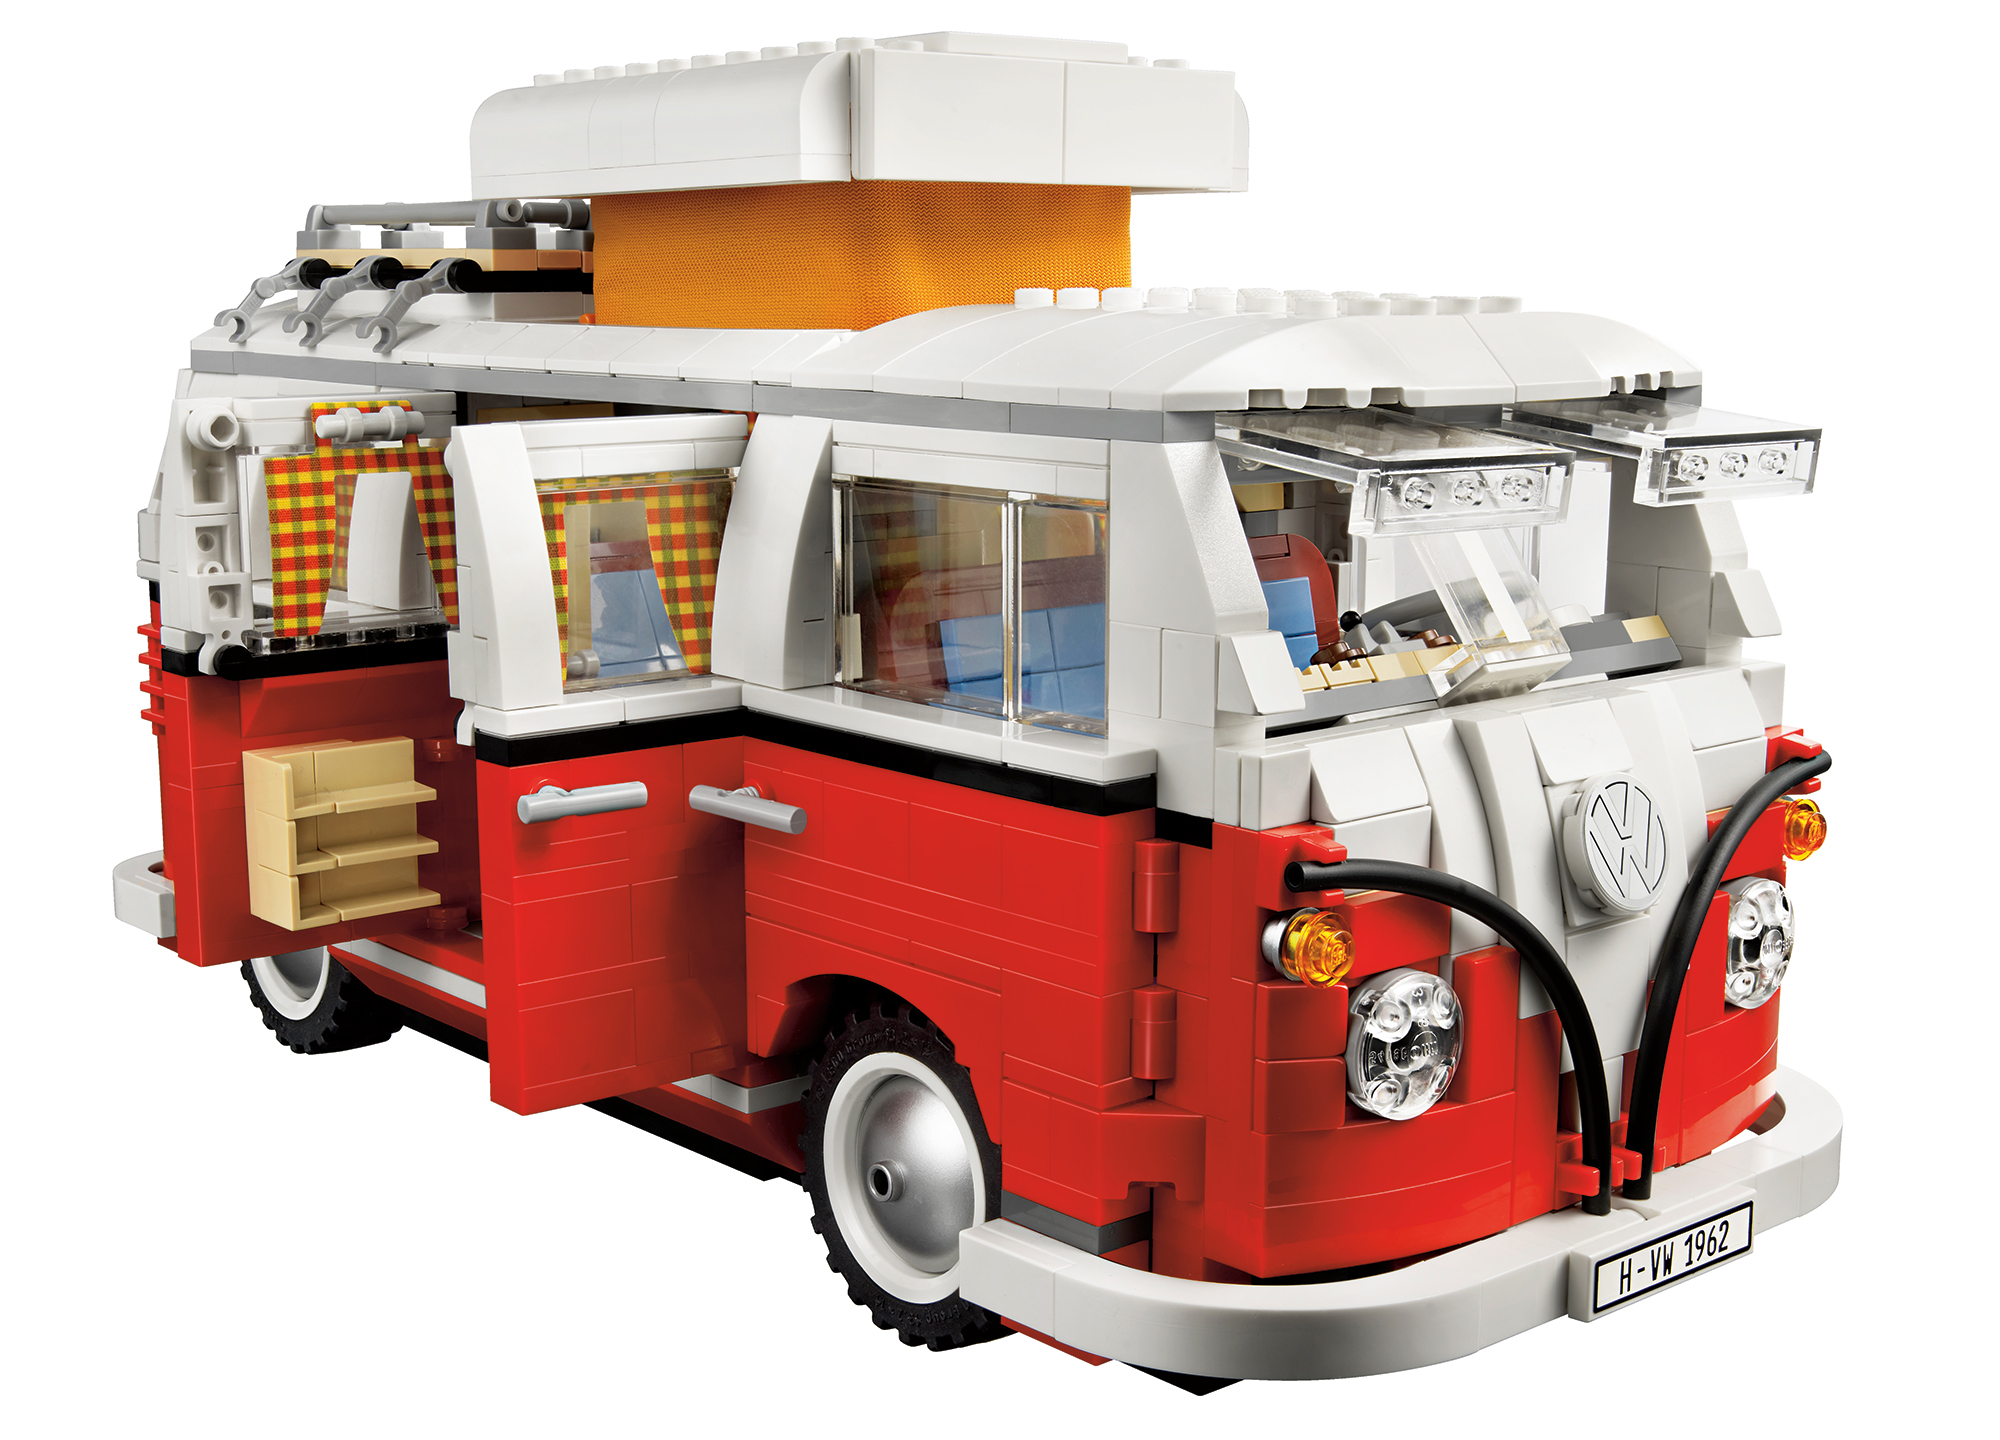 lego s 10220 volkswagen t1 camper van due in october 2011